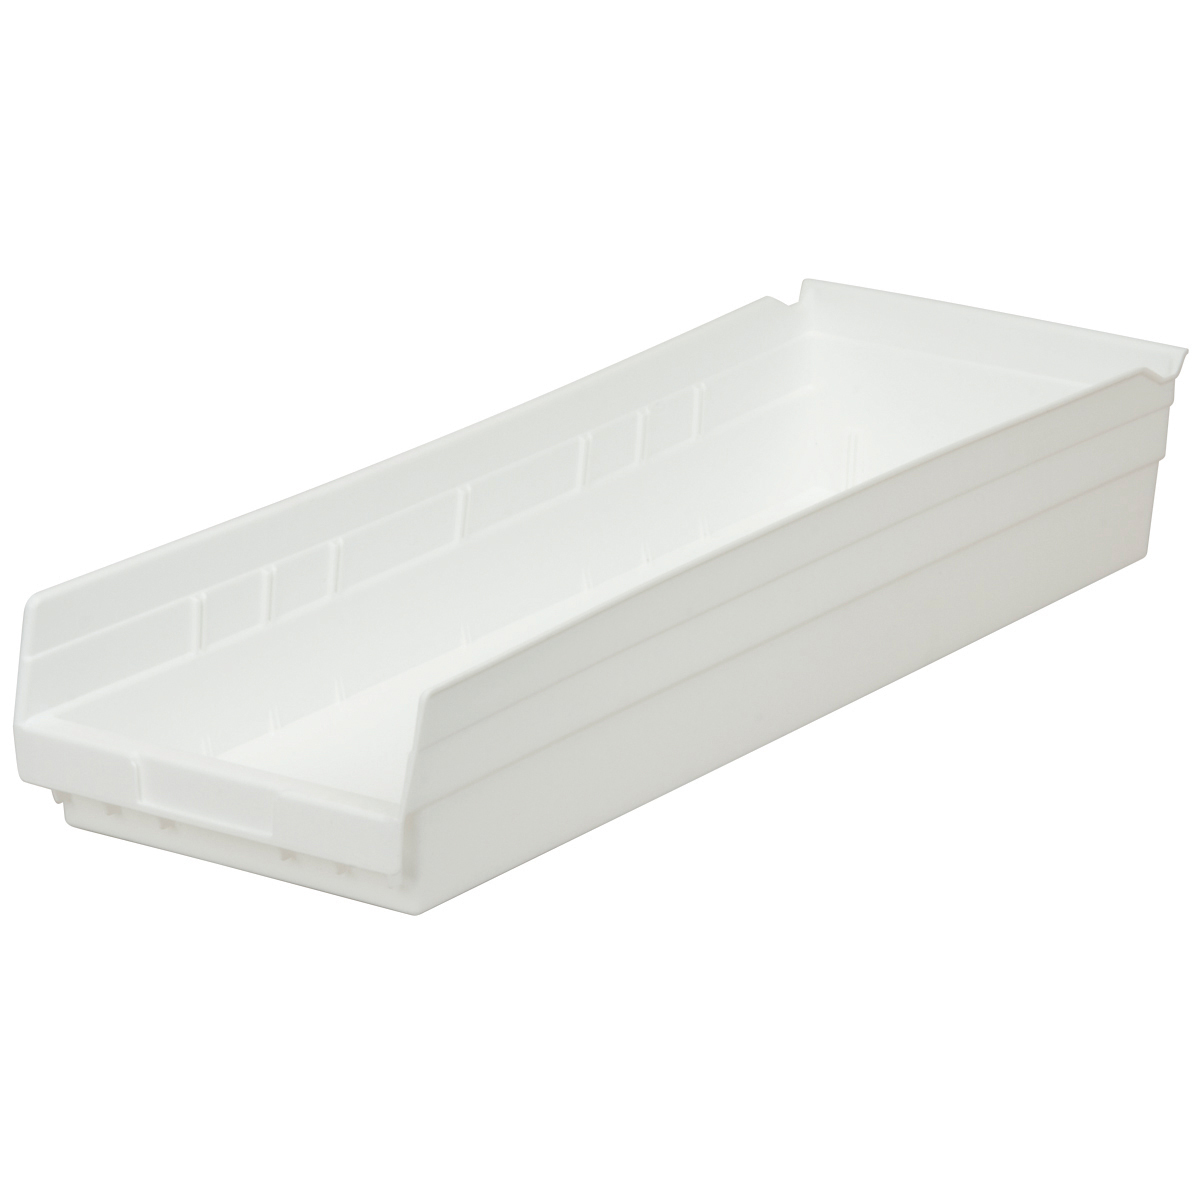 Shelf Bin 23-5/8 x 8-3/8 x 4, White (30184WHITE).  This item sold in carton quantities of 6.